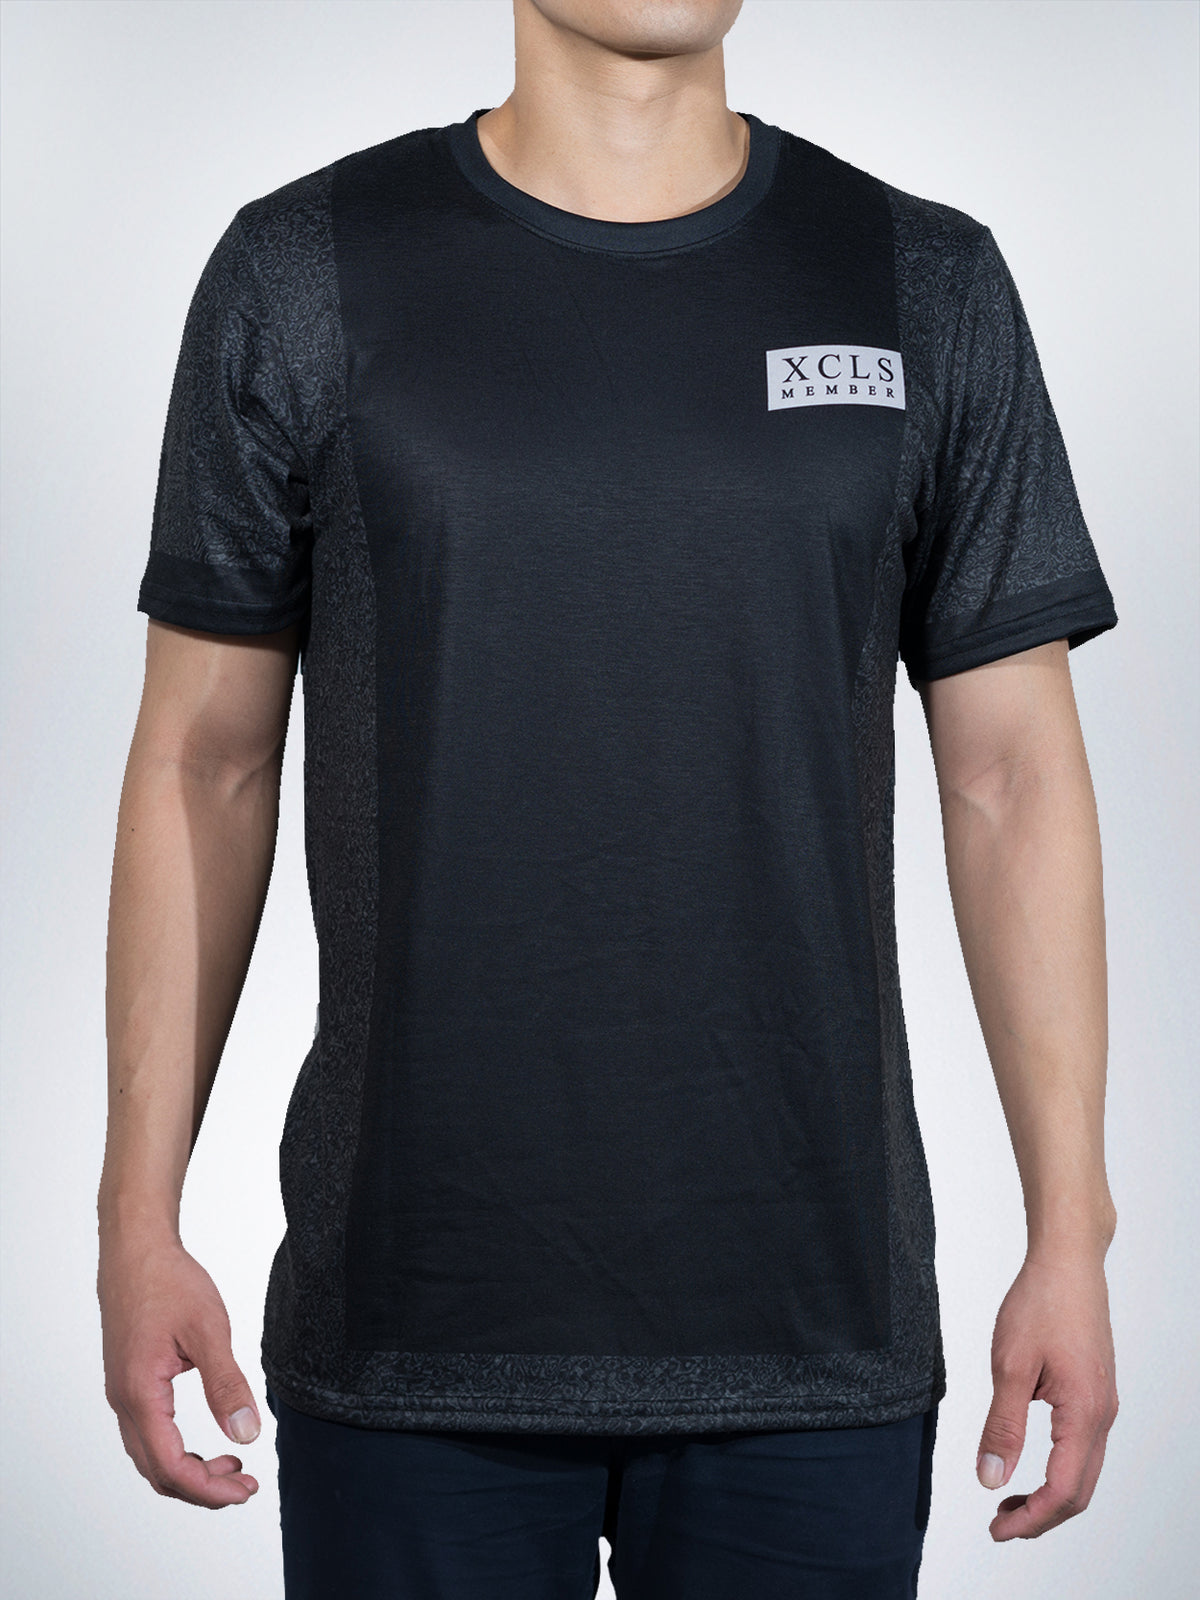 Statics Xclusive mens Tees shirts tops retro black urban sport